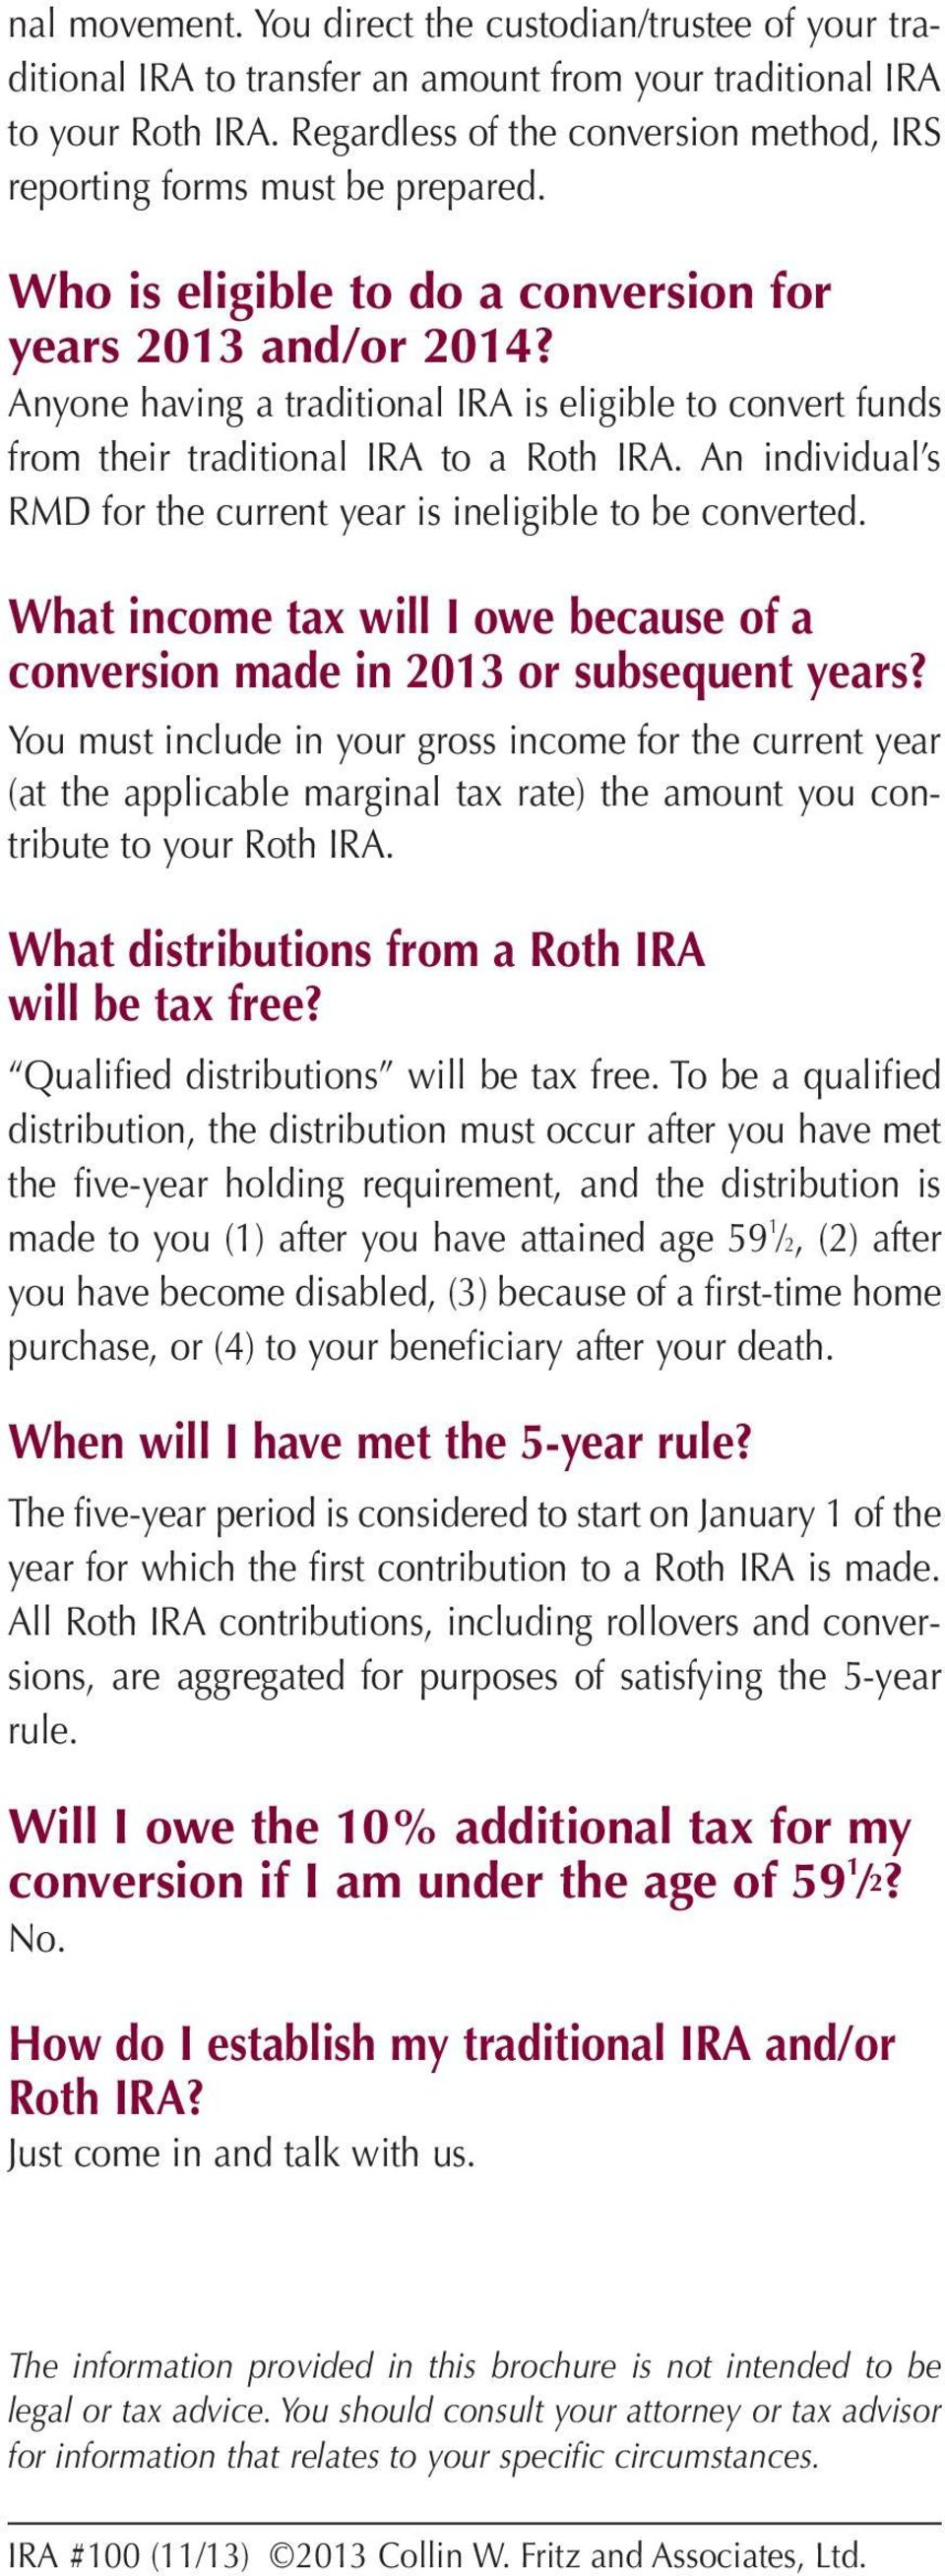 Anyone having a traditional IRA is eligible to convert funds from their traditional IRA to a Roth IRA. An individual s RMD for the current year is ineligible to be converted.